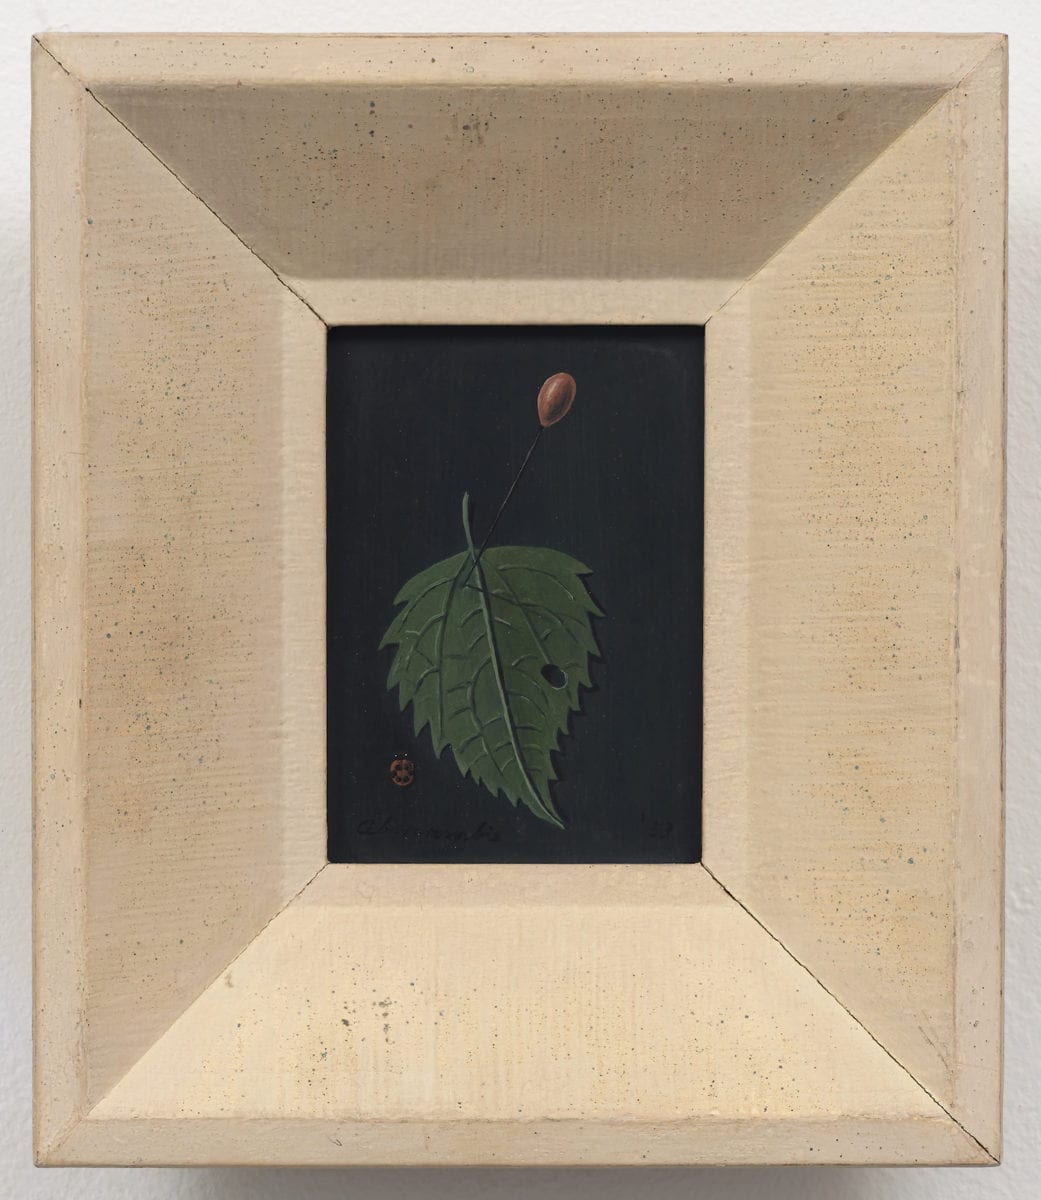 Gertrude Abercrombie, Leaf with Pin and Ladybug, 1953. Courtesy of Karma New York